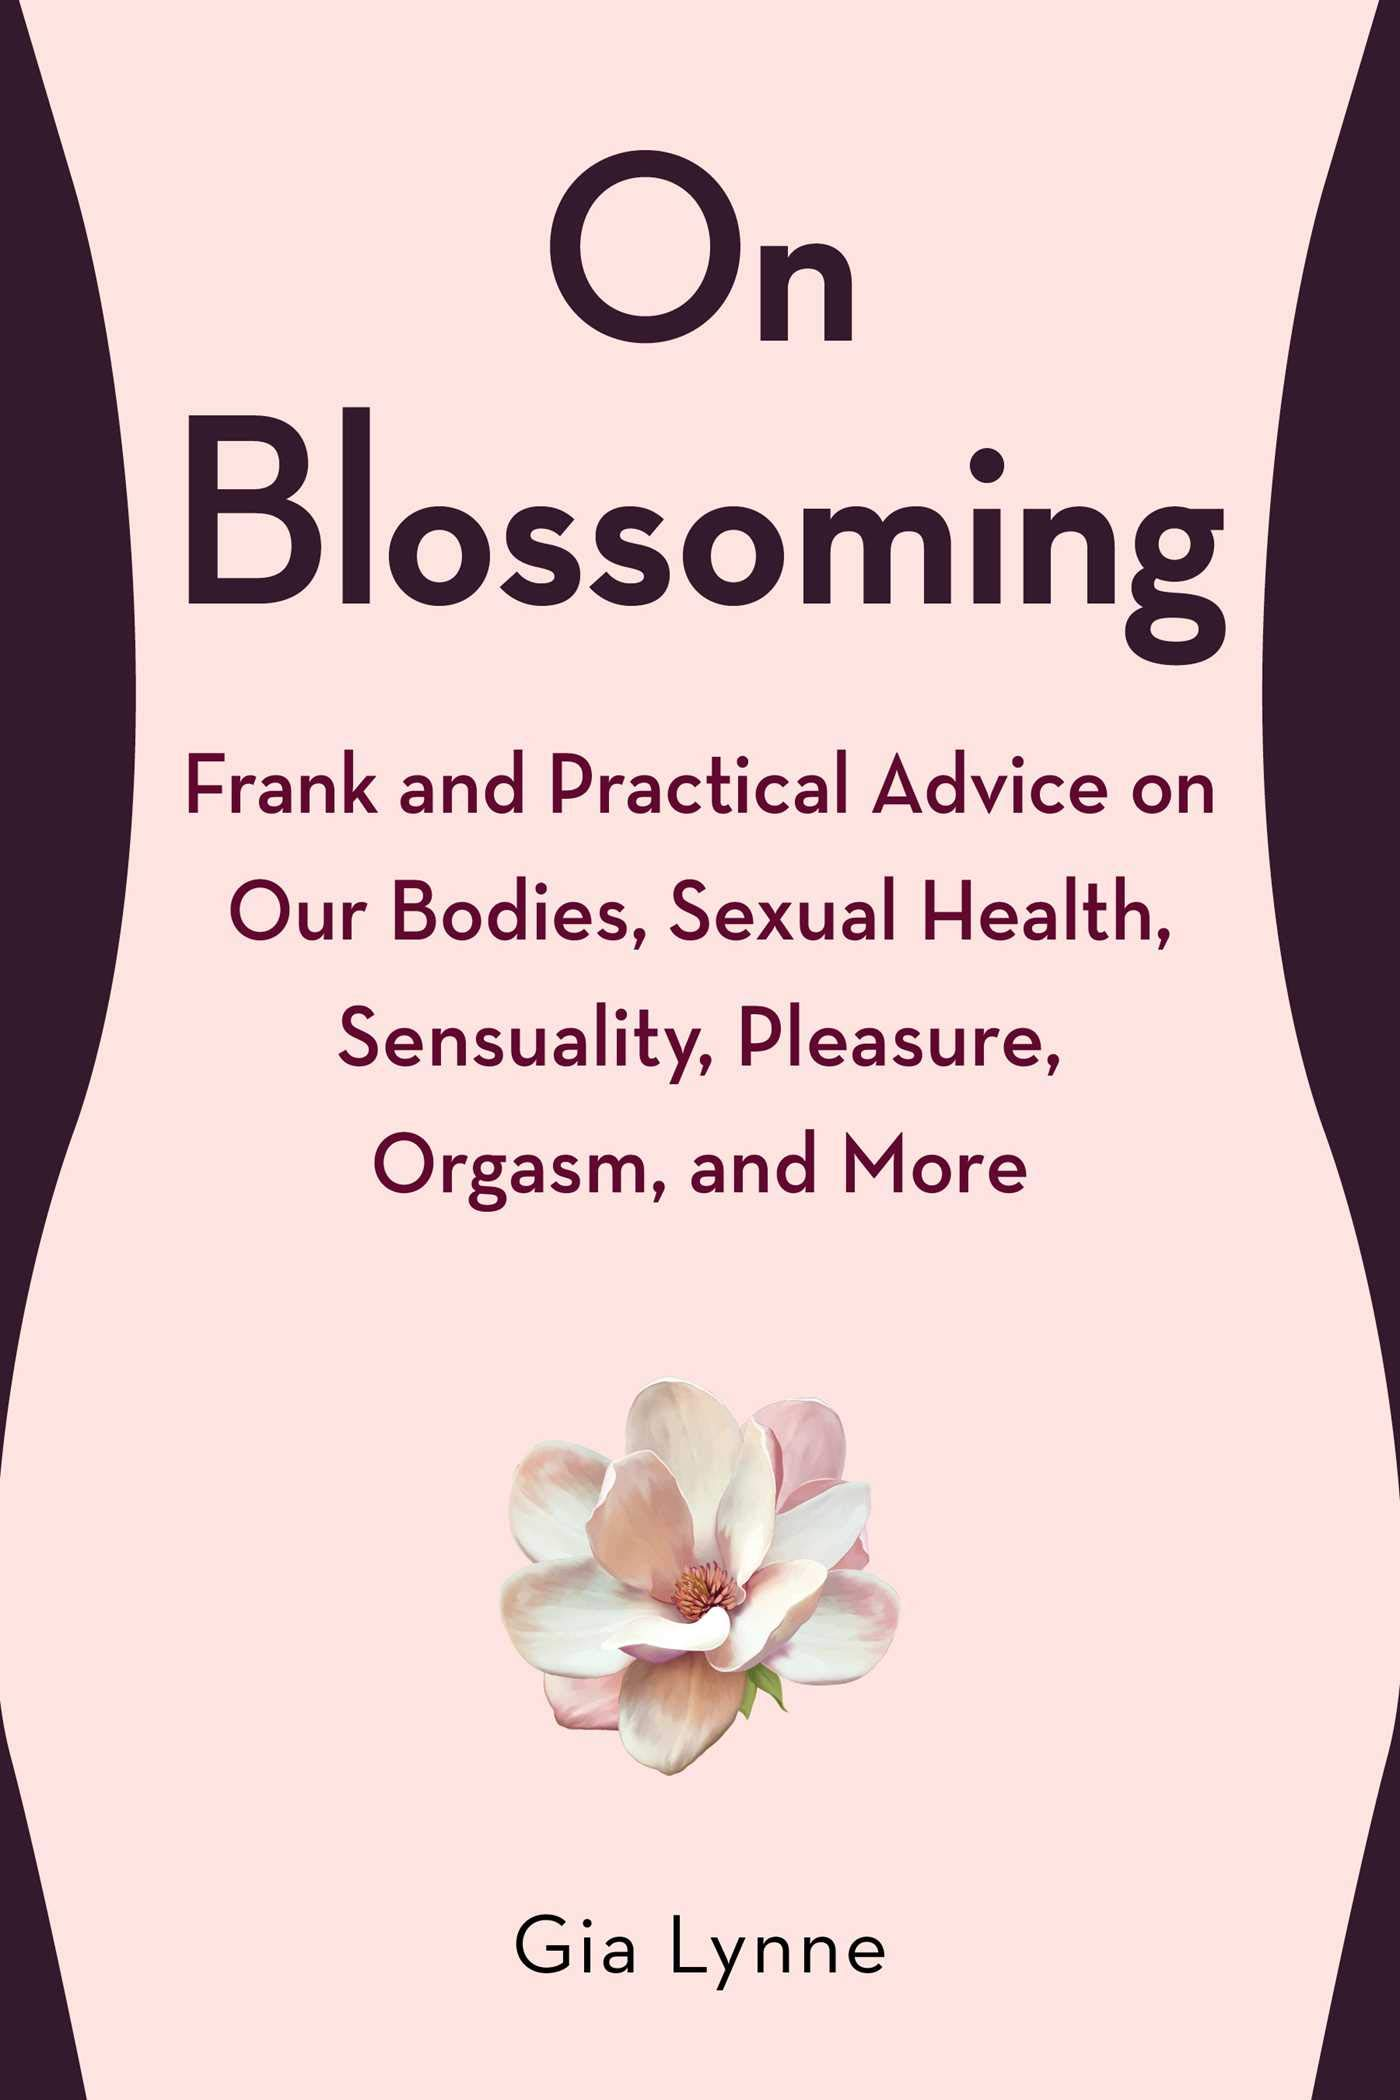 On Blossoming: Frank and Practical Advice on Our Bodies, Sexual Health, Sensuality, Pleasure, Orgasm, and More by Skyhorse